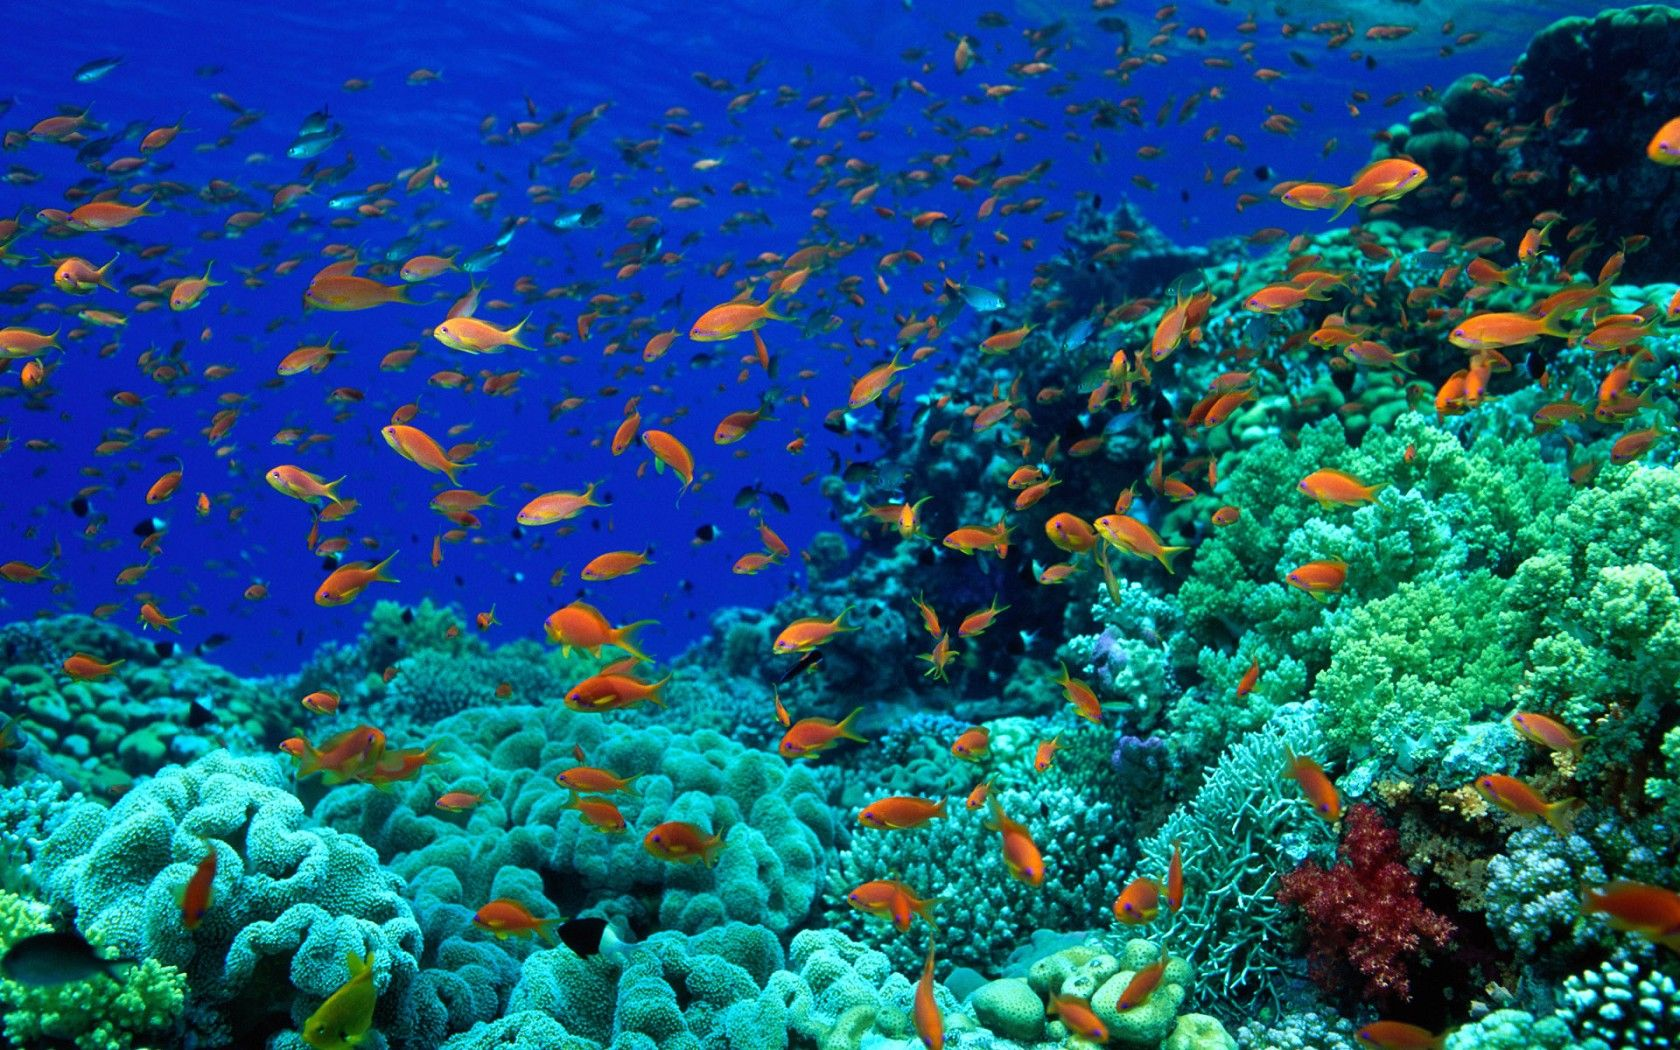 Ocean Floor Wallpaper 1680x1050